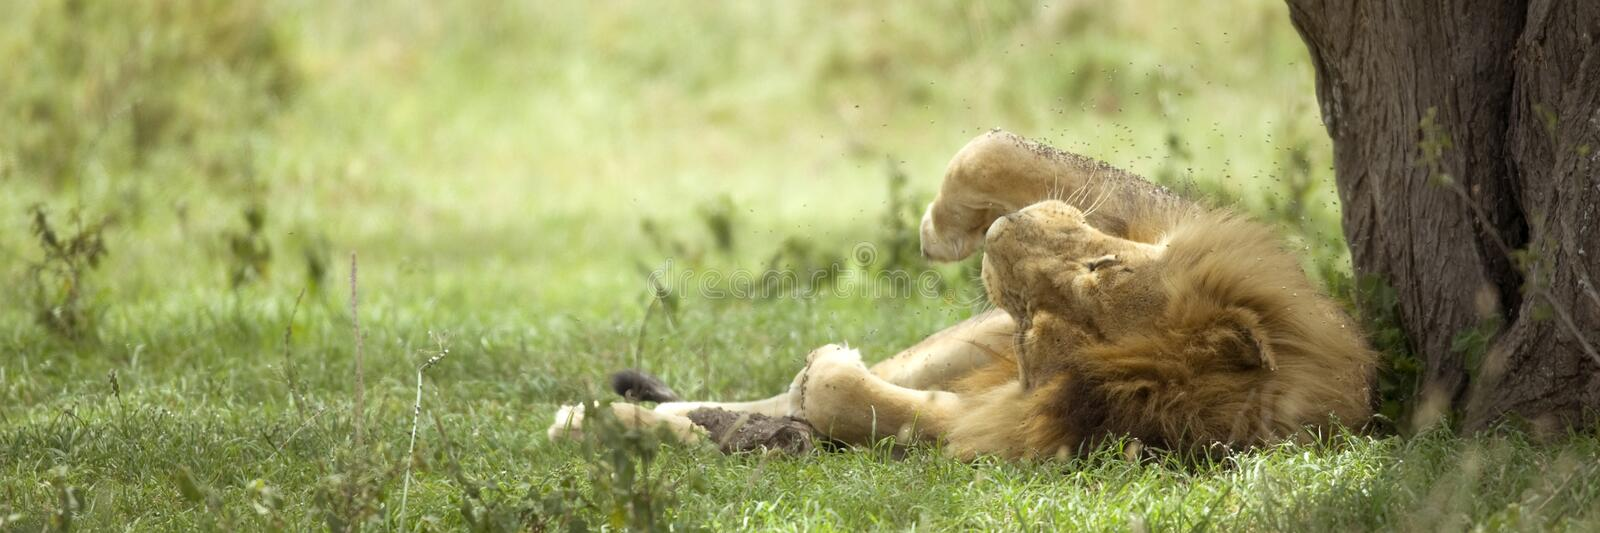 Download Lion resting under a tree stock image. Image of herbivorous - 7136977